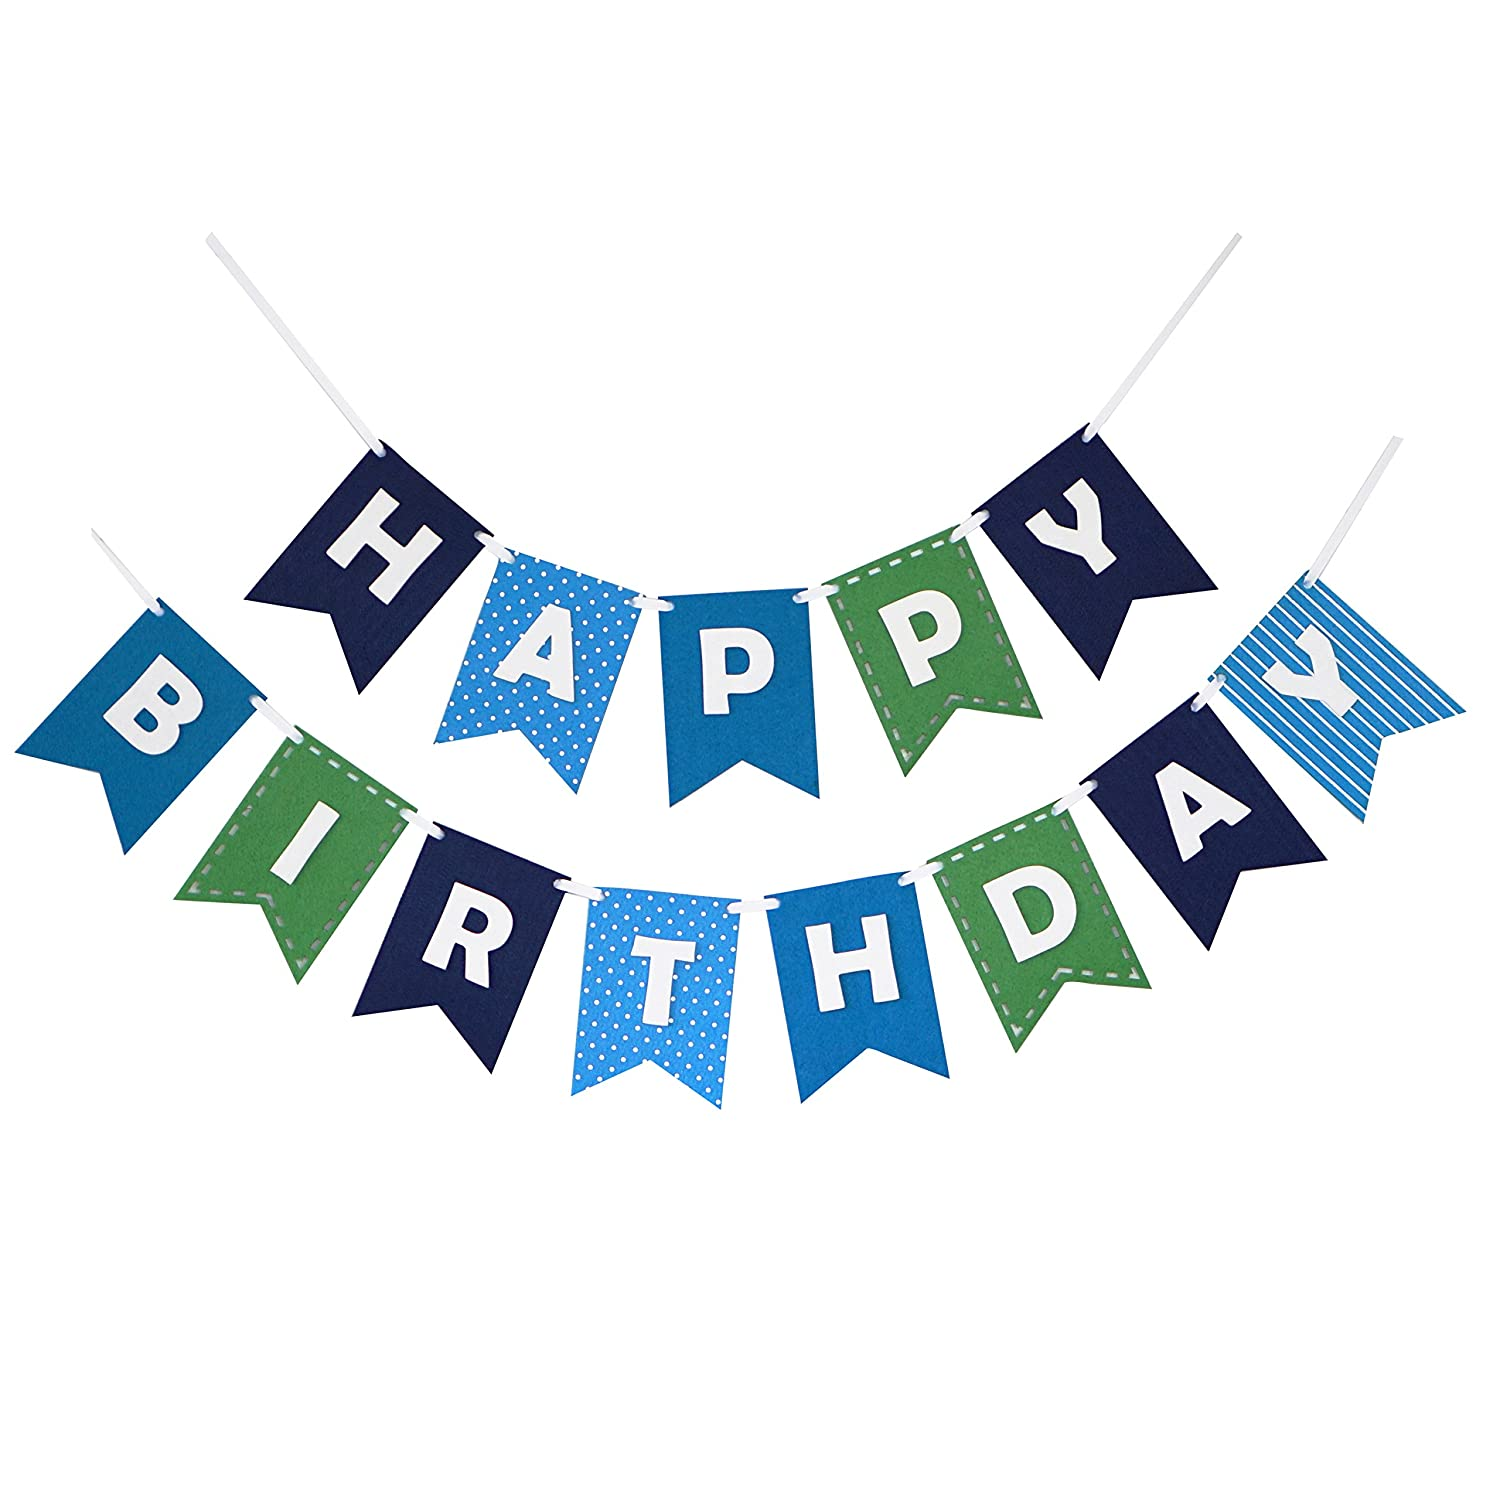 Happy Birthday Banner Bunting Laser Cut Felt 60 inches wide - Blues by Decomod